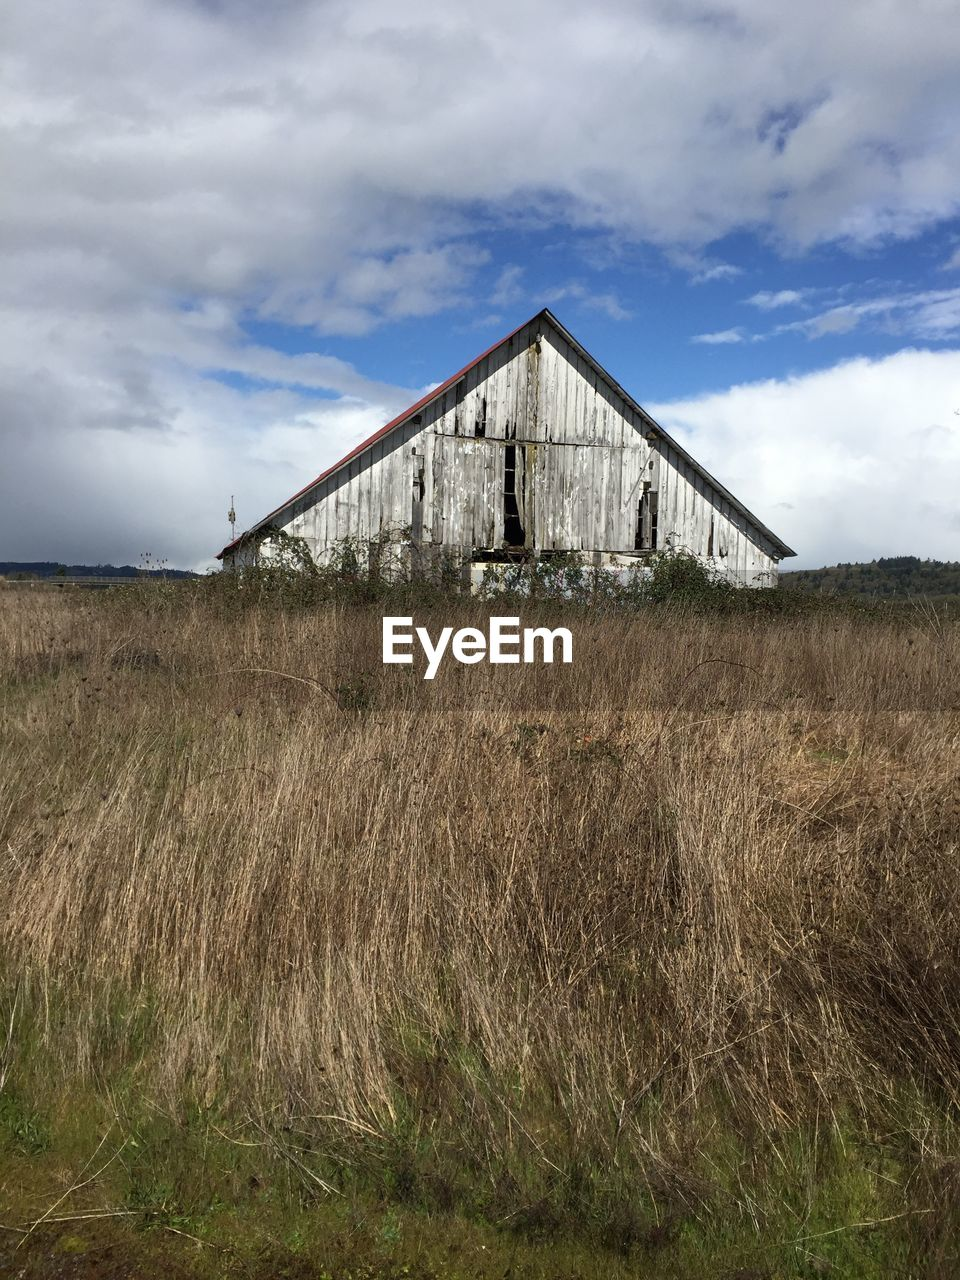 cloud - sky, sky, built structure, architecture, building exterior, land, grass, field, plant, nature, landscape, abandoned, day, agricultural building, no people, building, rural scene, growth, environment, barn, outdoors, ruined